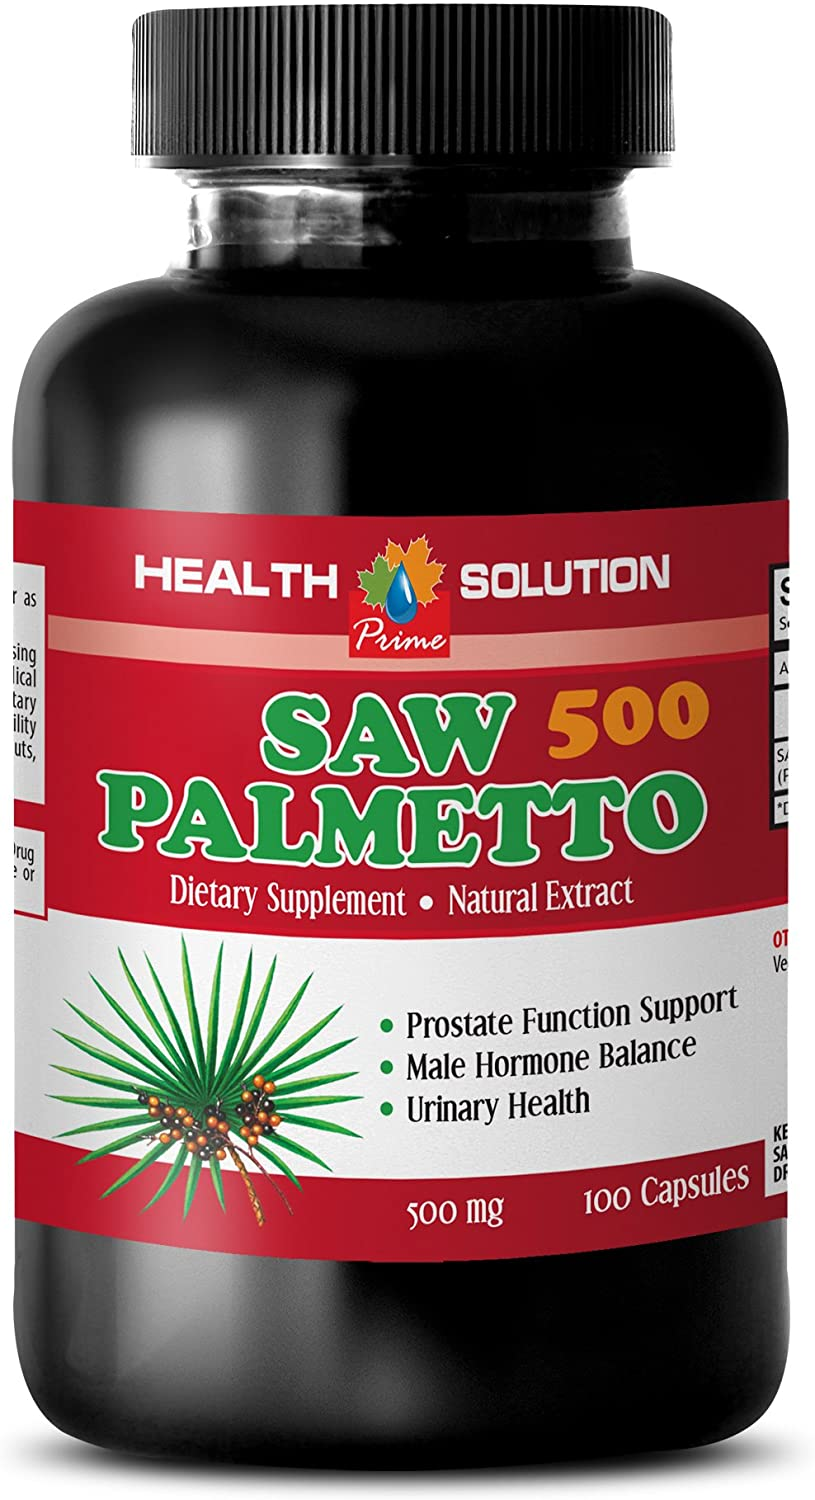 Prostate Support Supplement Real Health 500 Palmetto Japan's largest assortment Saw - Mg High material